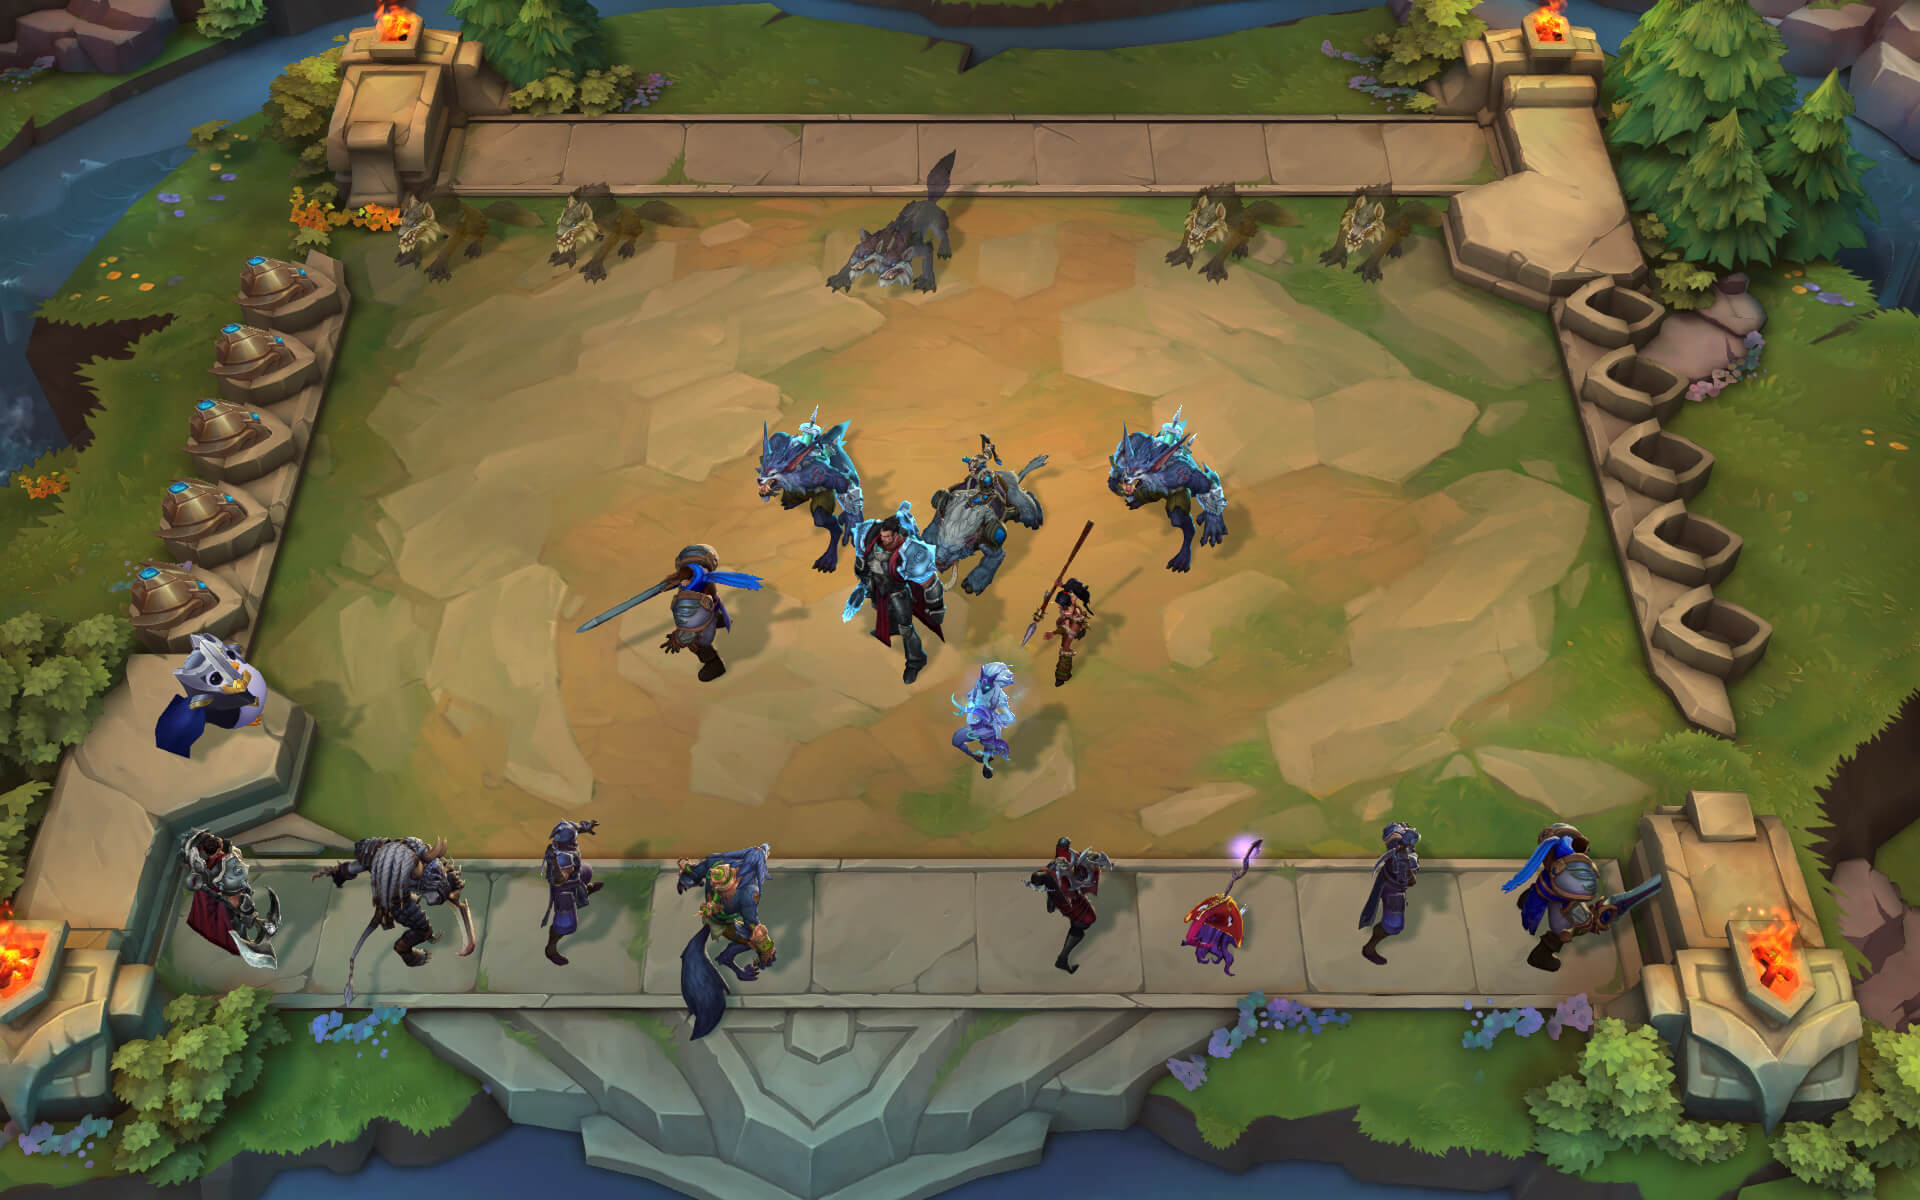 League of Legends adjacent autobattler Teamfight Tactics is coming to mobile devices screenshot